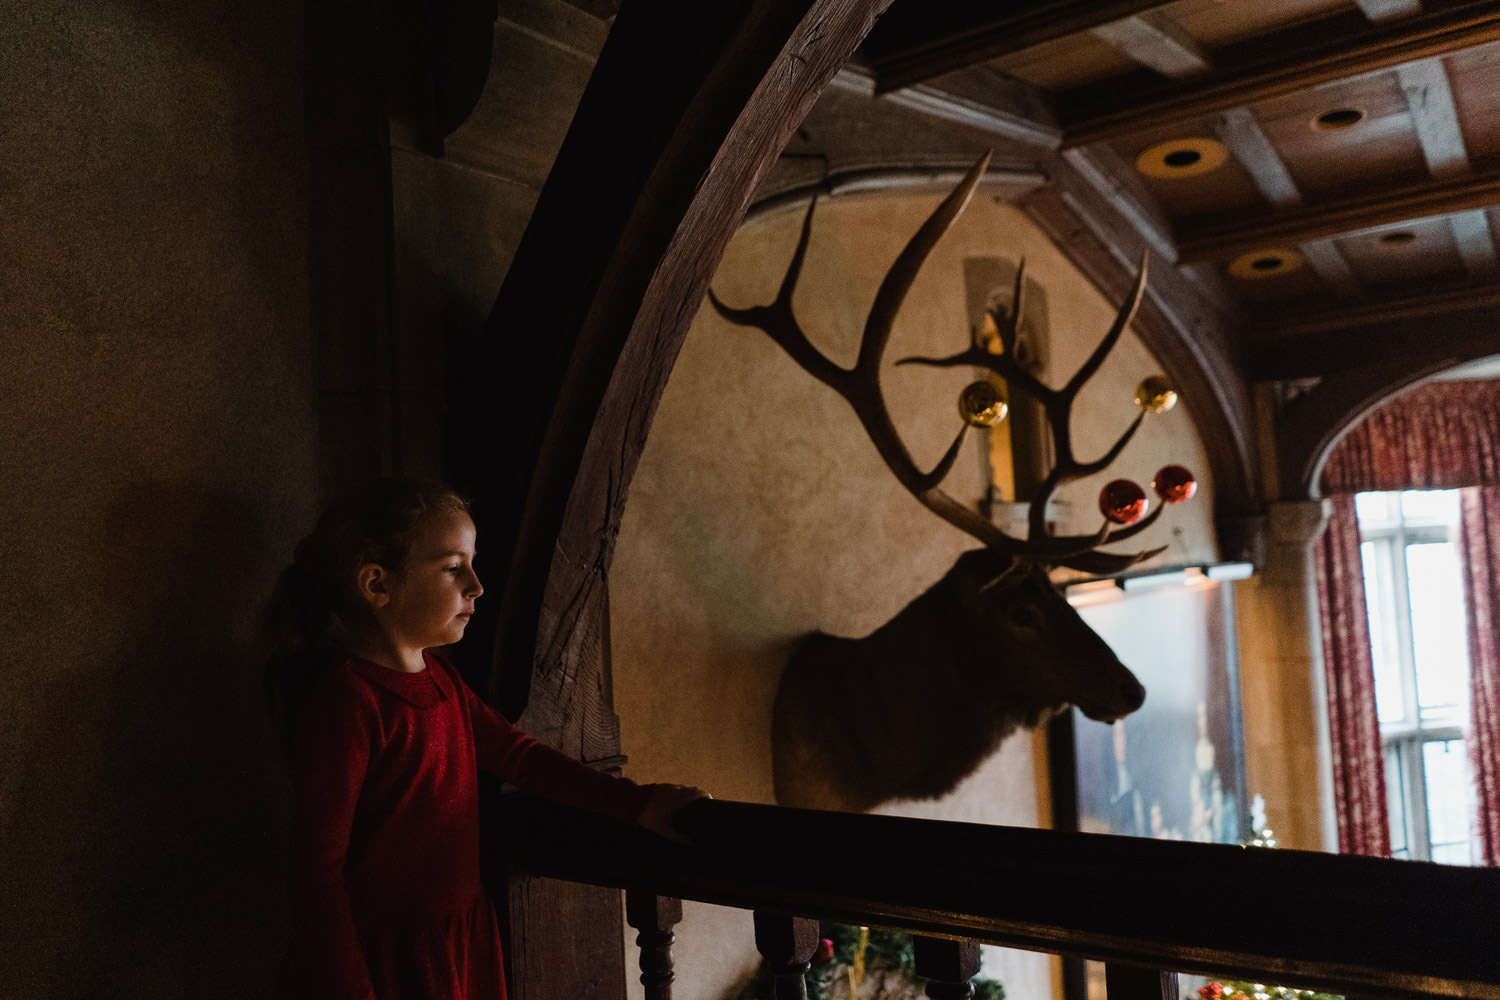 A little girl stands next to an elk decorated for the holidays at Coe House.